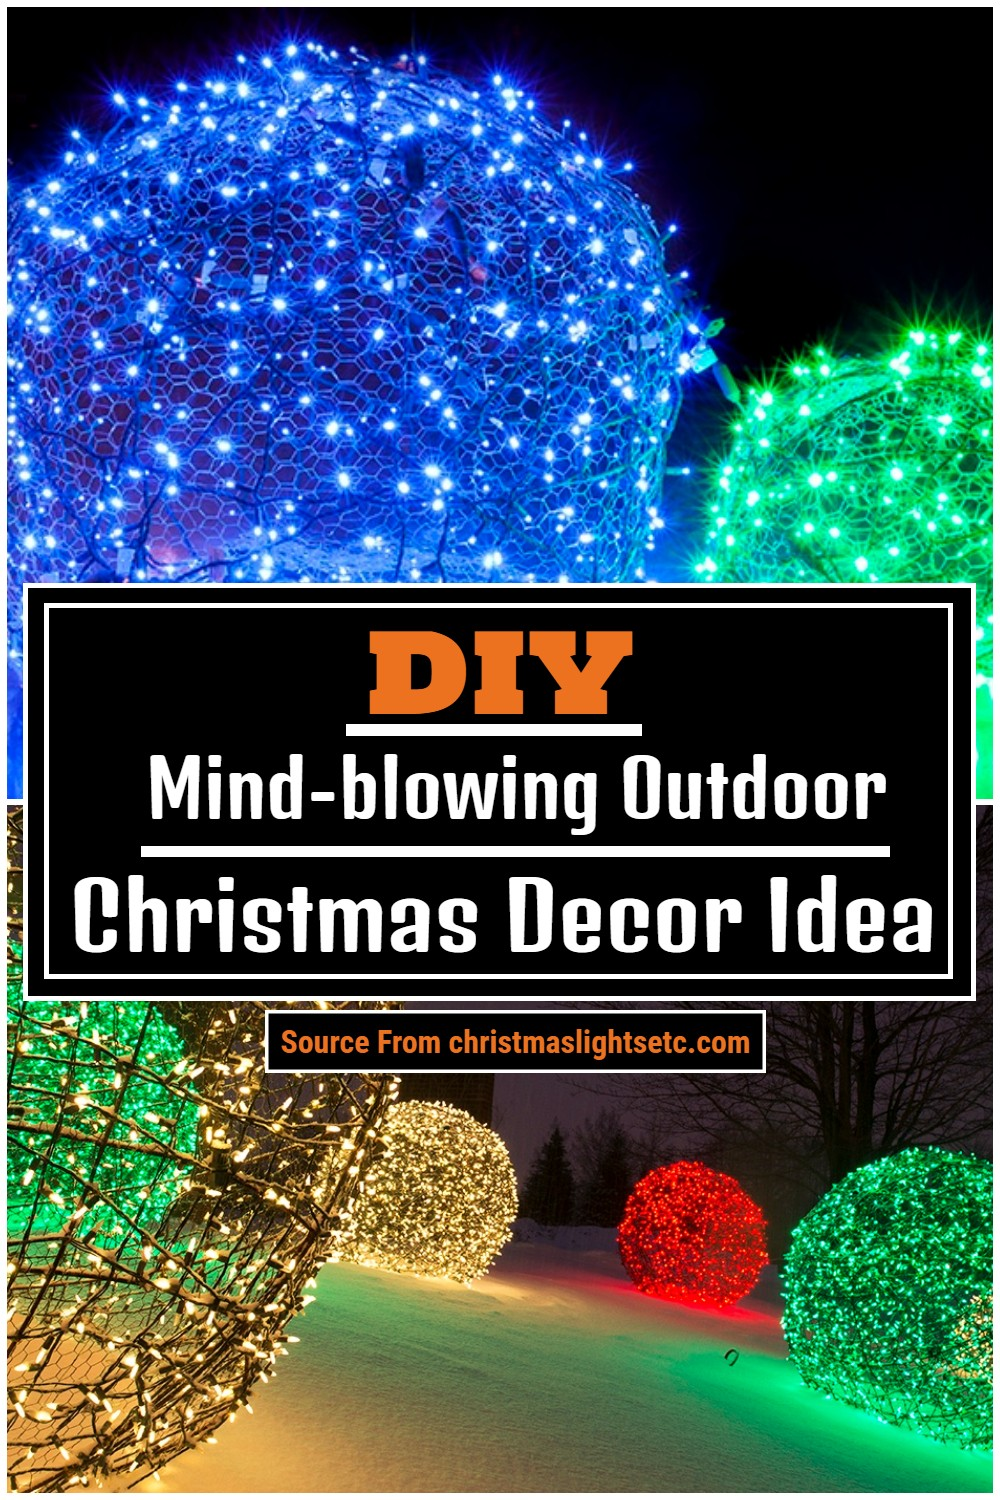 Mind-blowing Outdoor Christmas Decor Idea